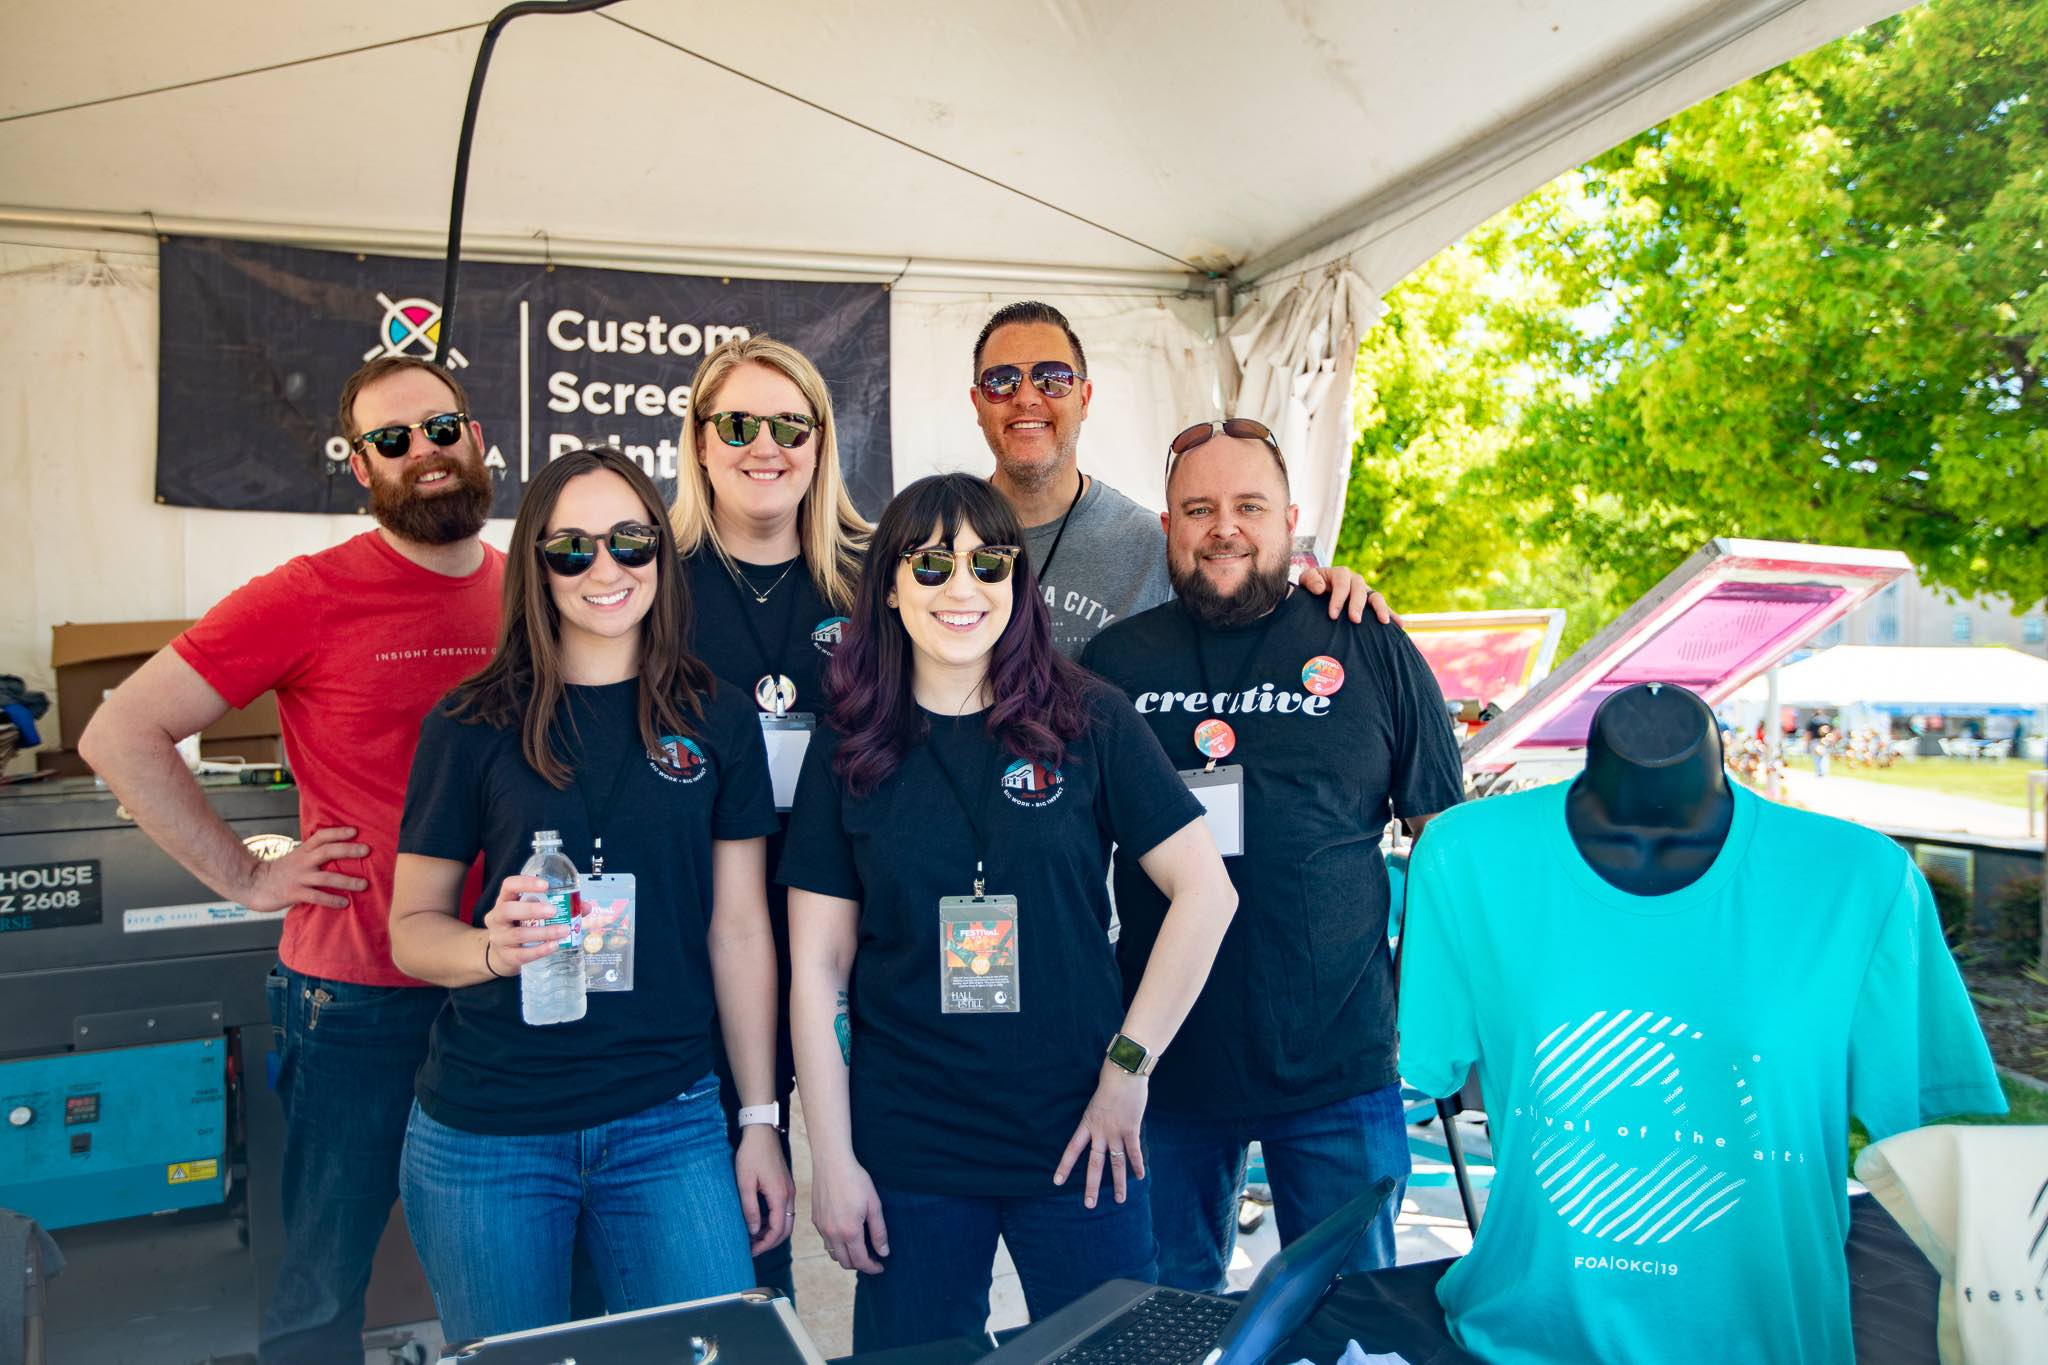 Insight Creative Group team volunteering at the Festival of the Arts in OKC